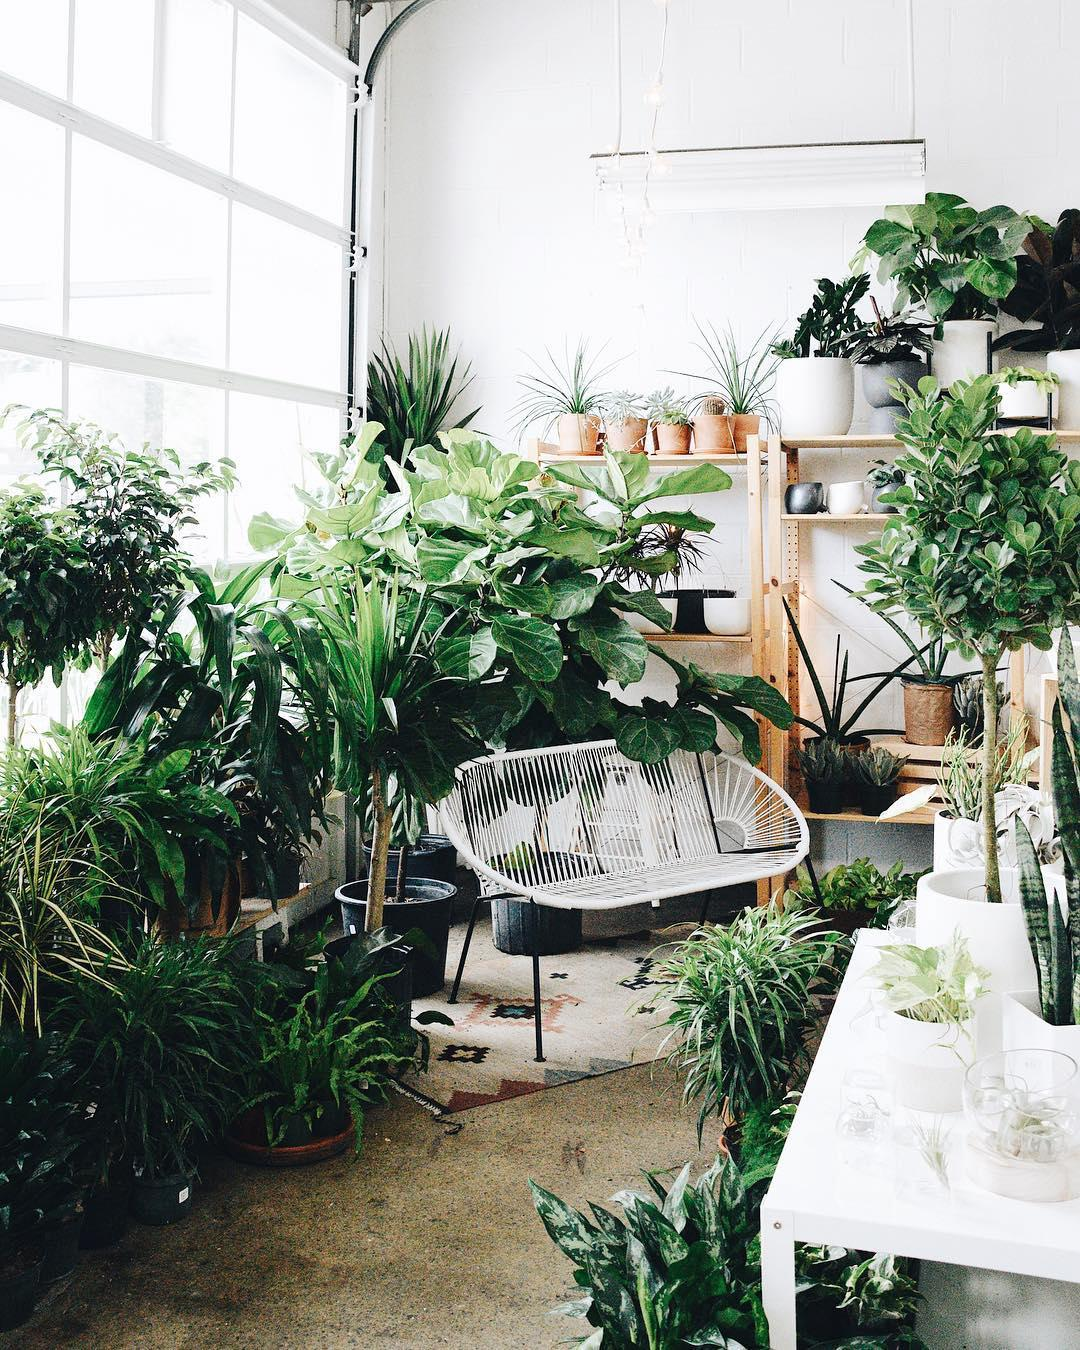 30 of the Cutest Plant Shops Around the World House Plant Shops Near Me on attractions near me, beauty salon near me, fishing near me, swimming pool near me, gardens near me, factories near me, sauna near me, beach near me, malls near me, lounges near me,